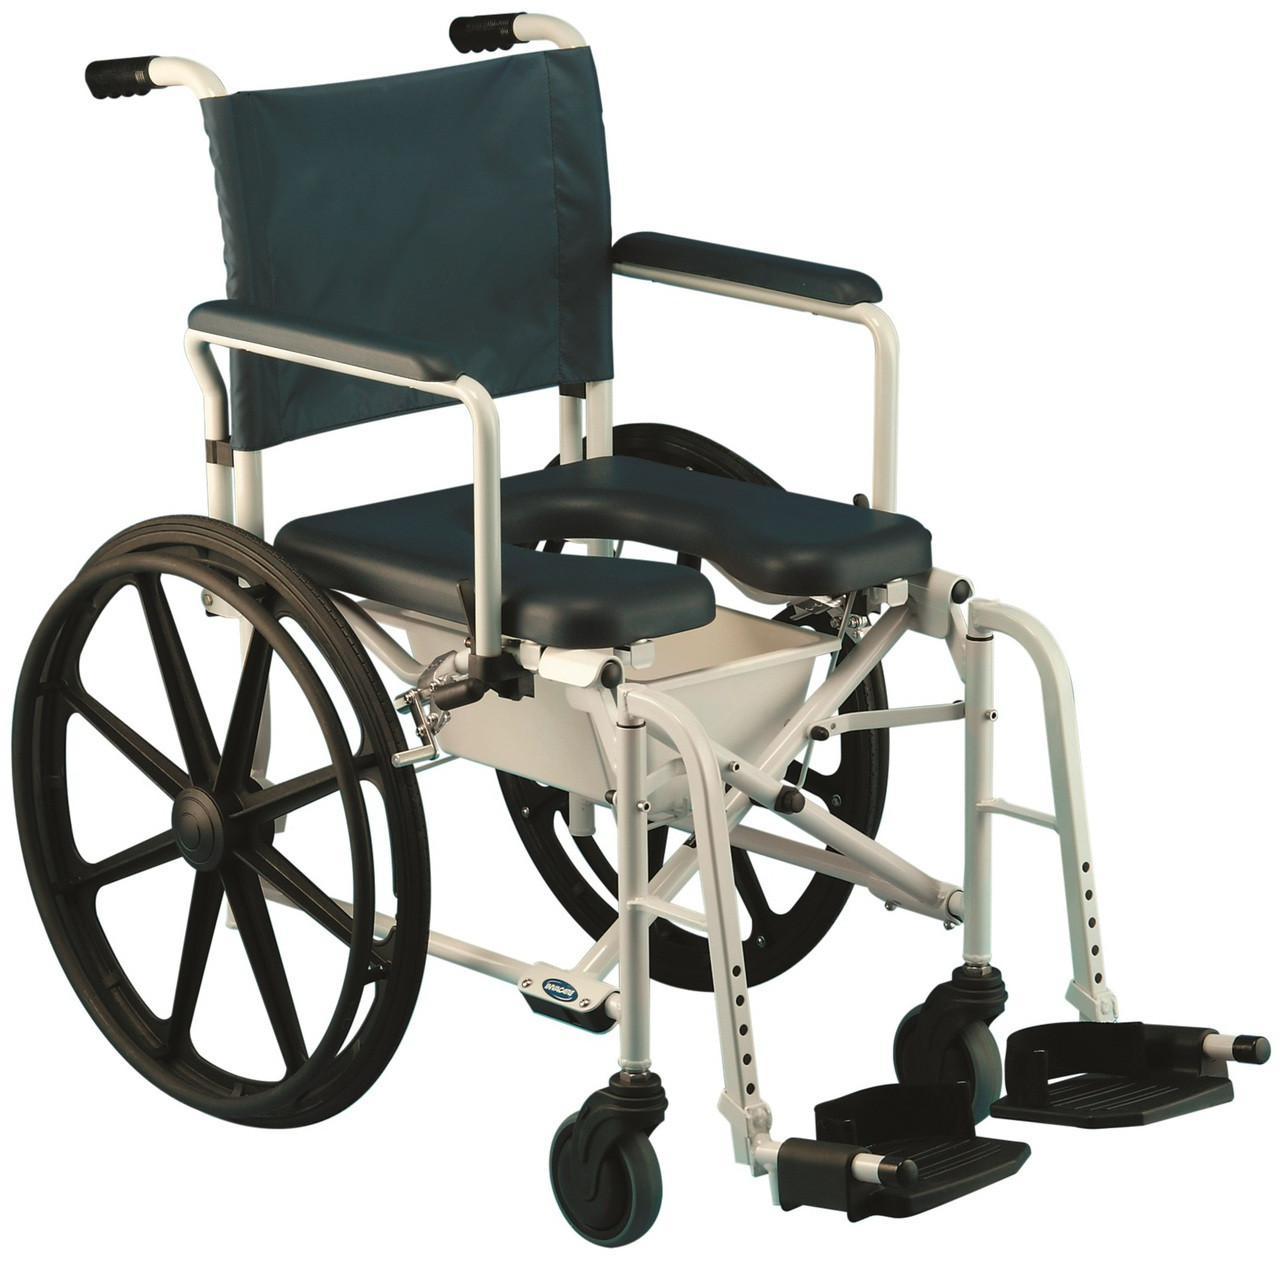 Mariner 6895 Rehab Shower Commode Chair by Invacare